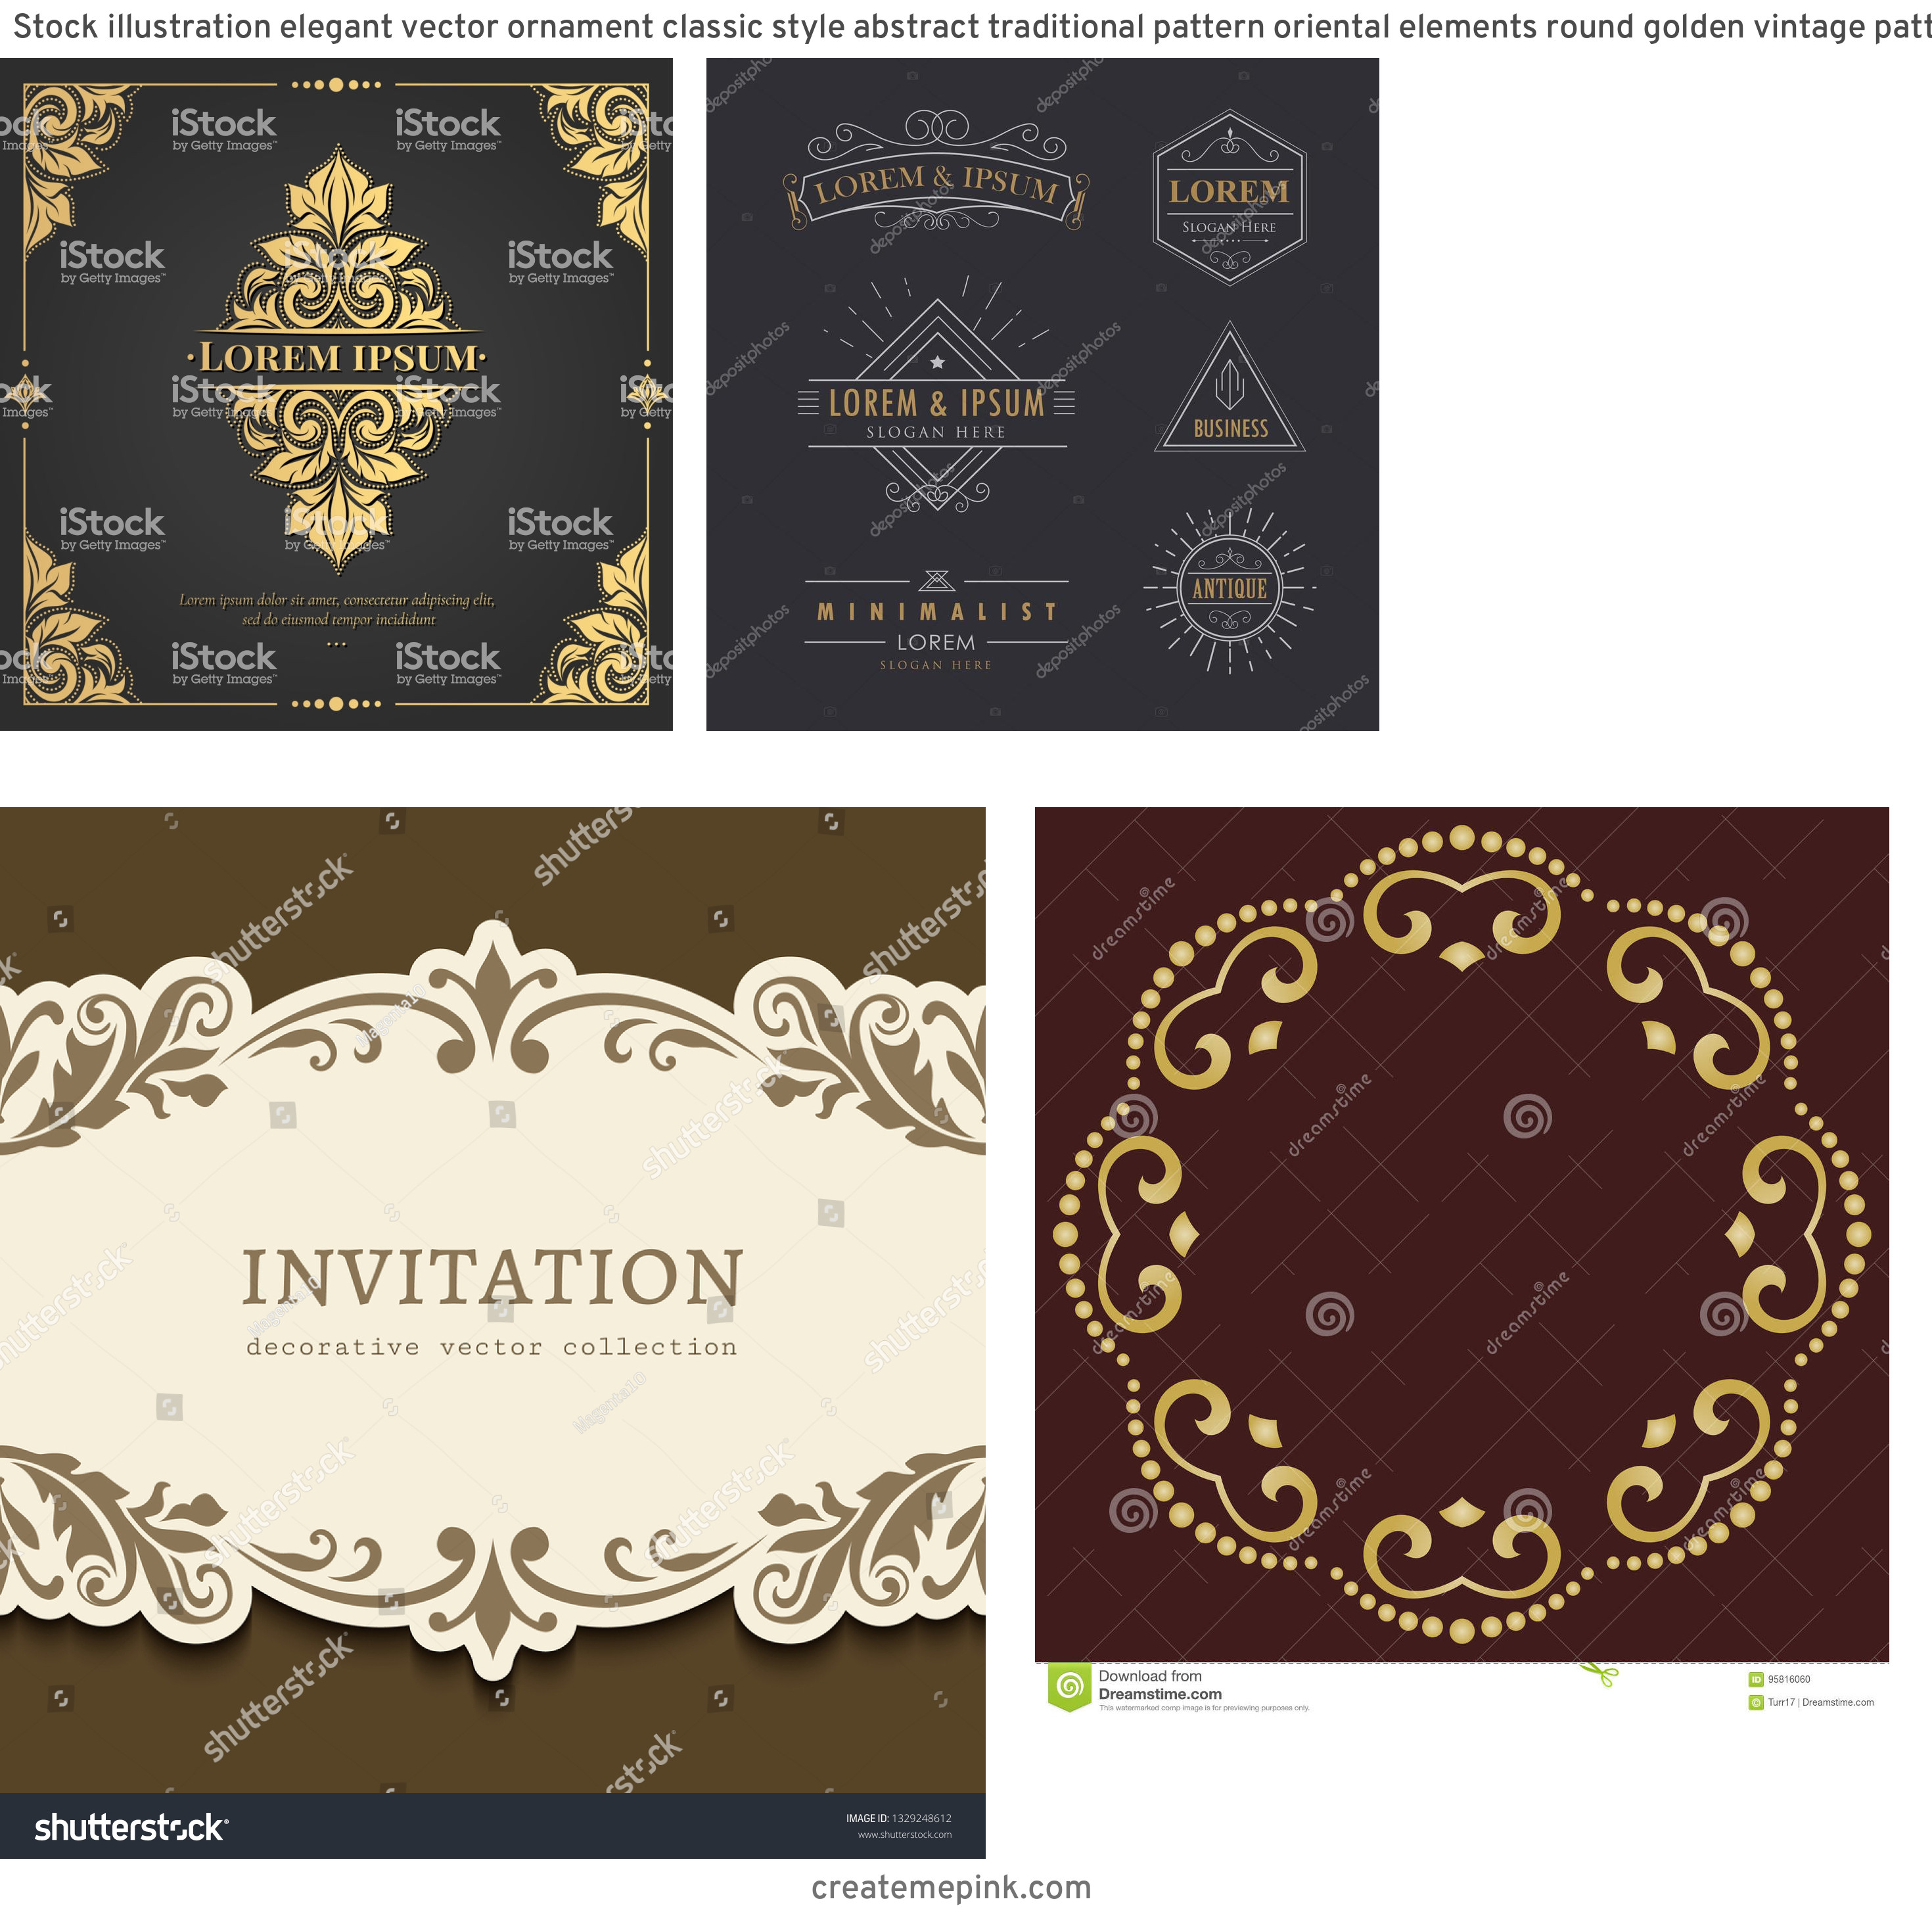 Elegant Vector Flourishes: Stock Illustration Elegant Vector Ornament Classic Style Abstract Traditional Pattern Oriental Elements Round Golden Vintage Pattern Image